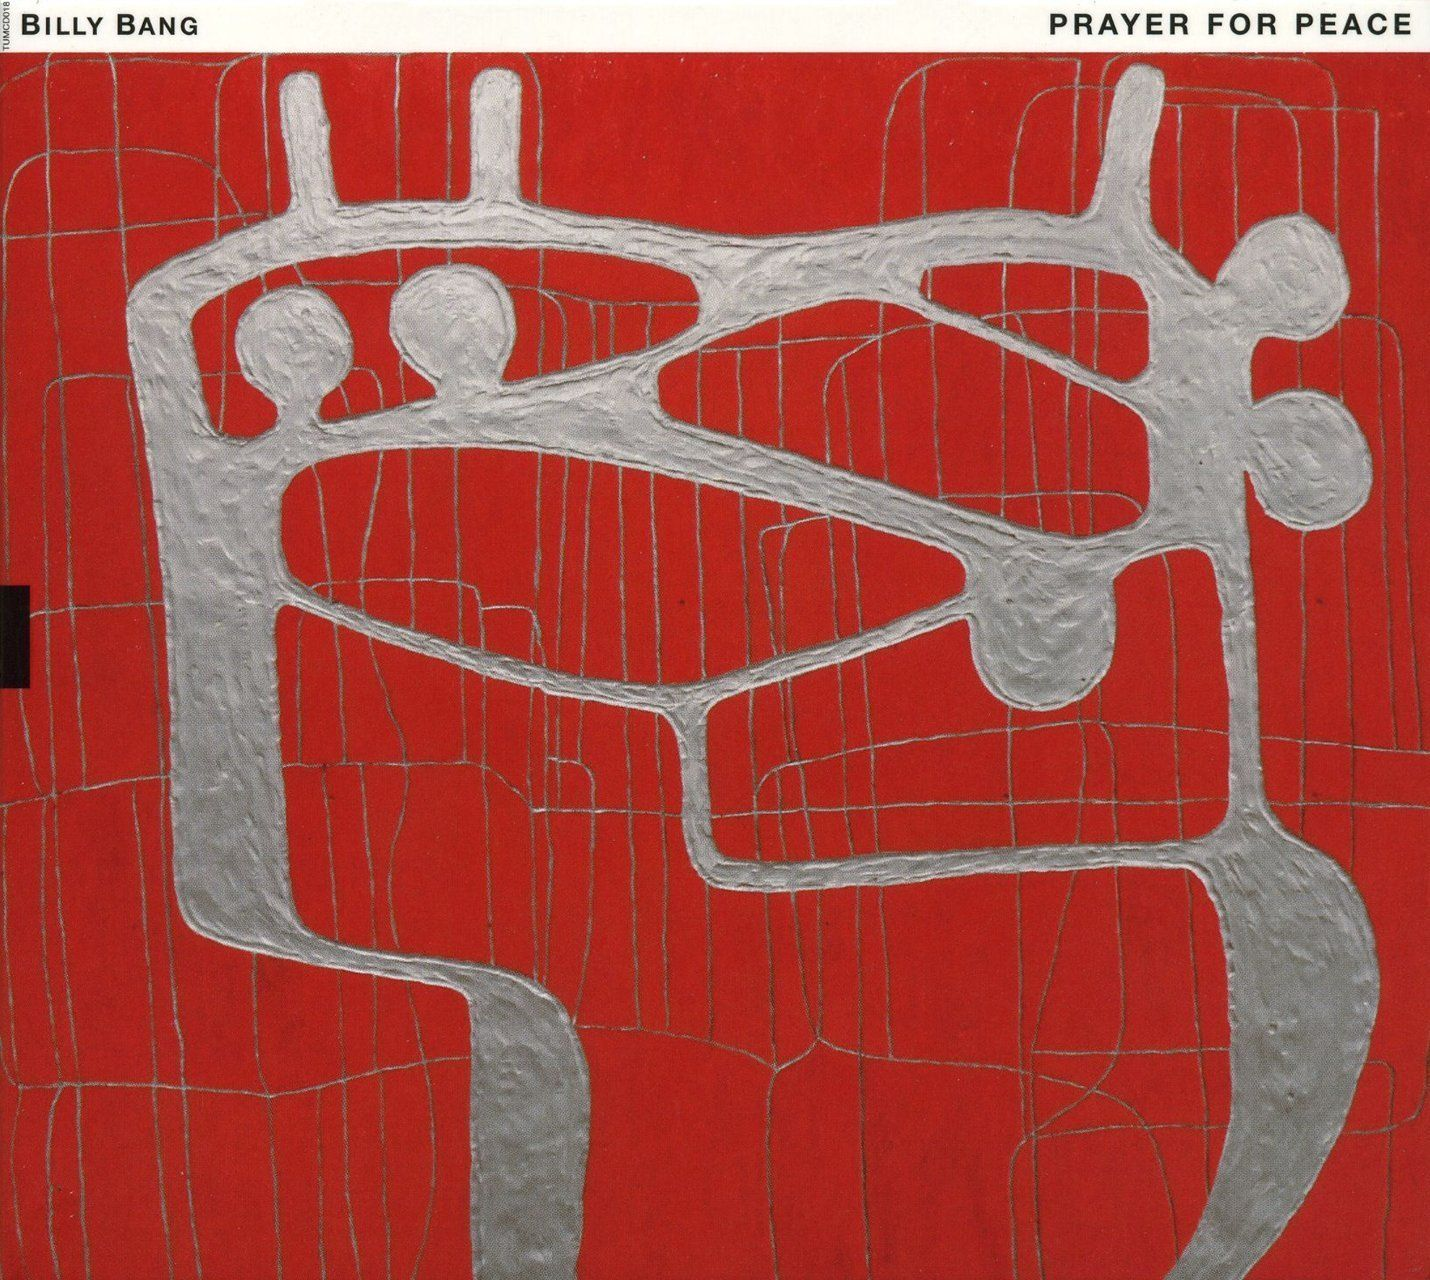 2007 Billy Bang - Prayer For Peace [TUM Records TUMCD018] artwork: Marika Mäkelä #albumcover #Abstract #art